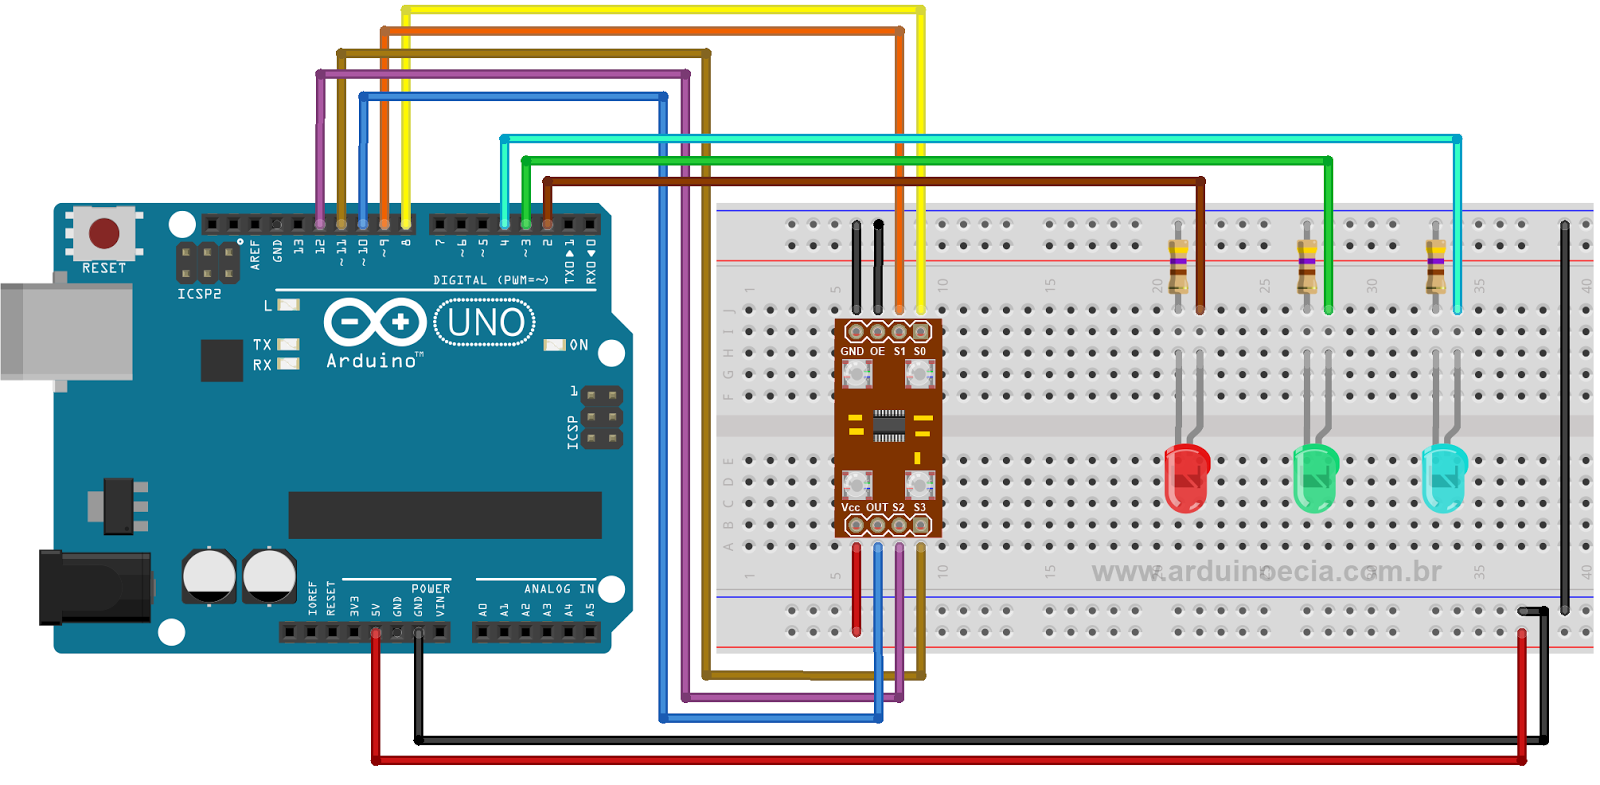 PDF Photodiode Op Amp Arduino - docs-downloadcom